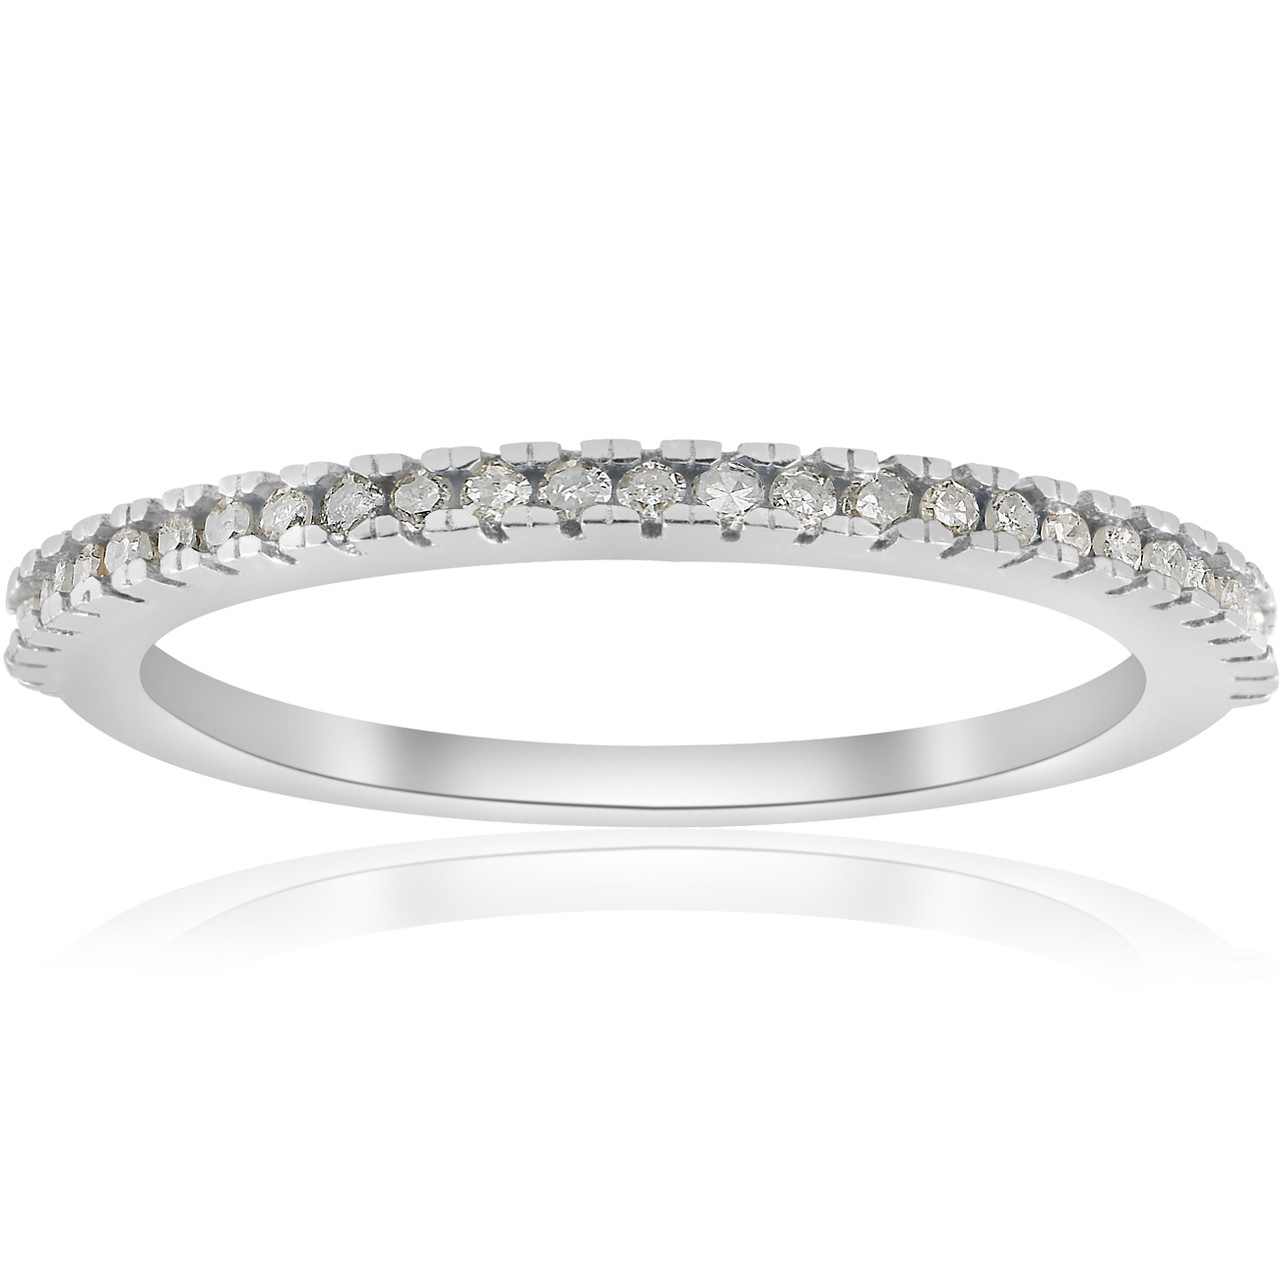 79d5467b24e3 1 10ct Pave Diamond Wedding Ring 10k White Gold Stackable Womens Thin Band